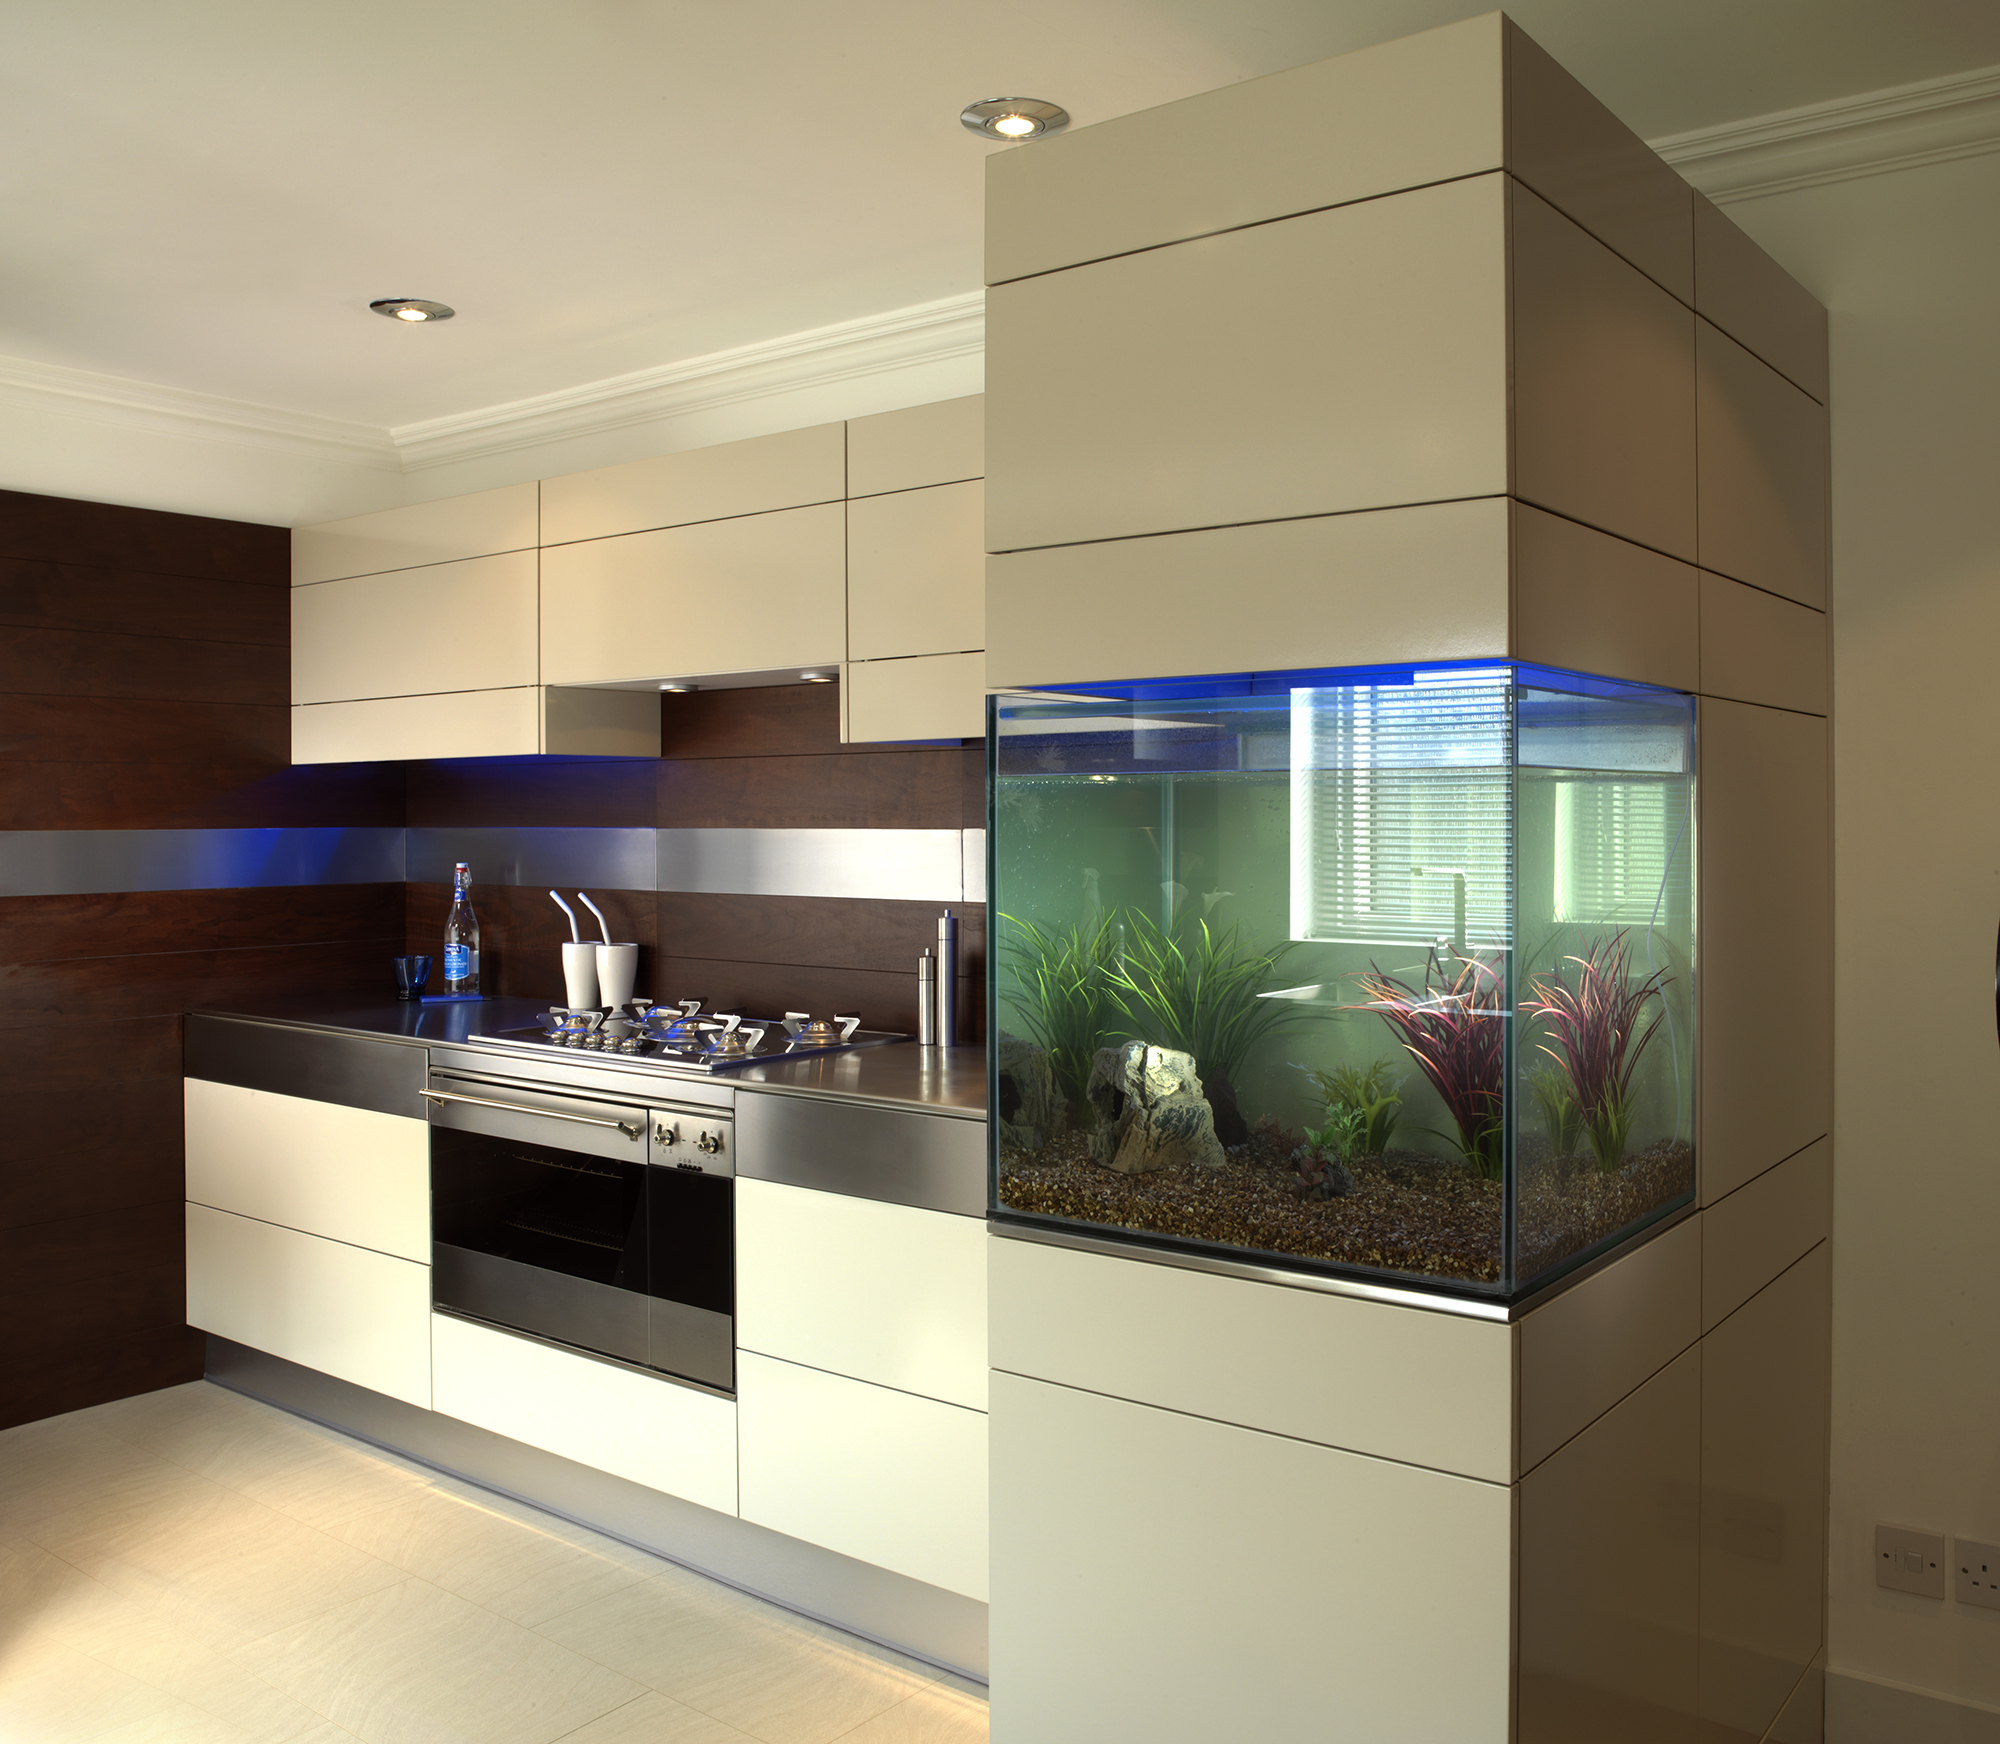 designer kitchen units bespoke luxury kitchen designs designer kitchens 3270